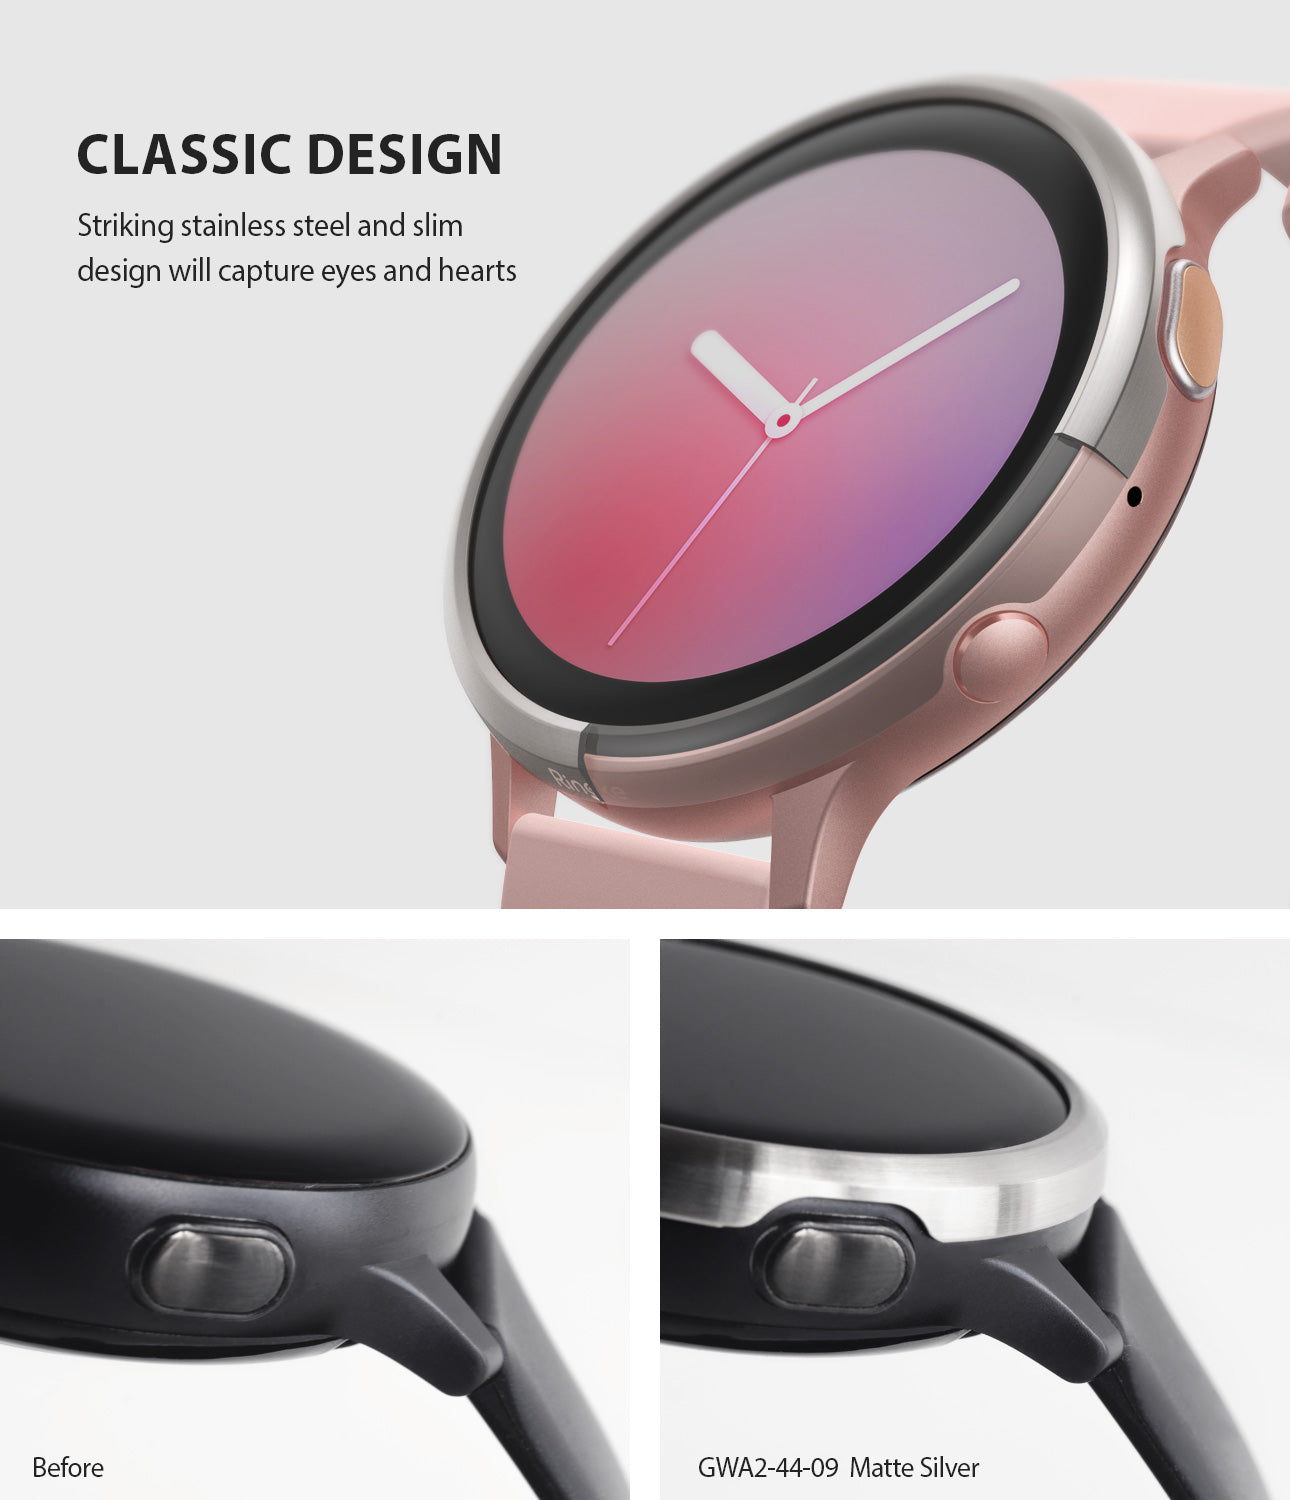 ringke bezel styling for galaxy watch active 2 44mm stainless steel classic design